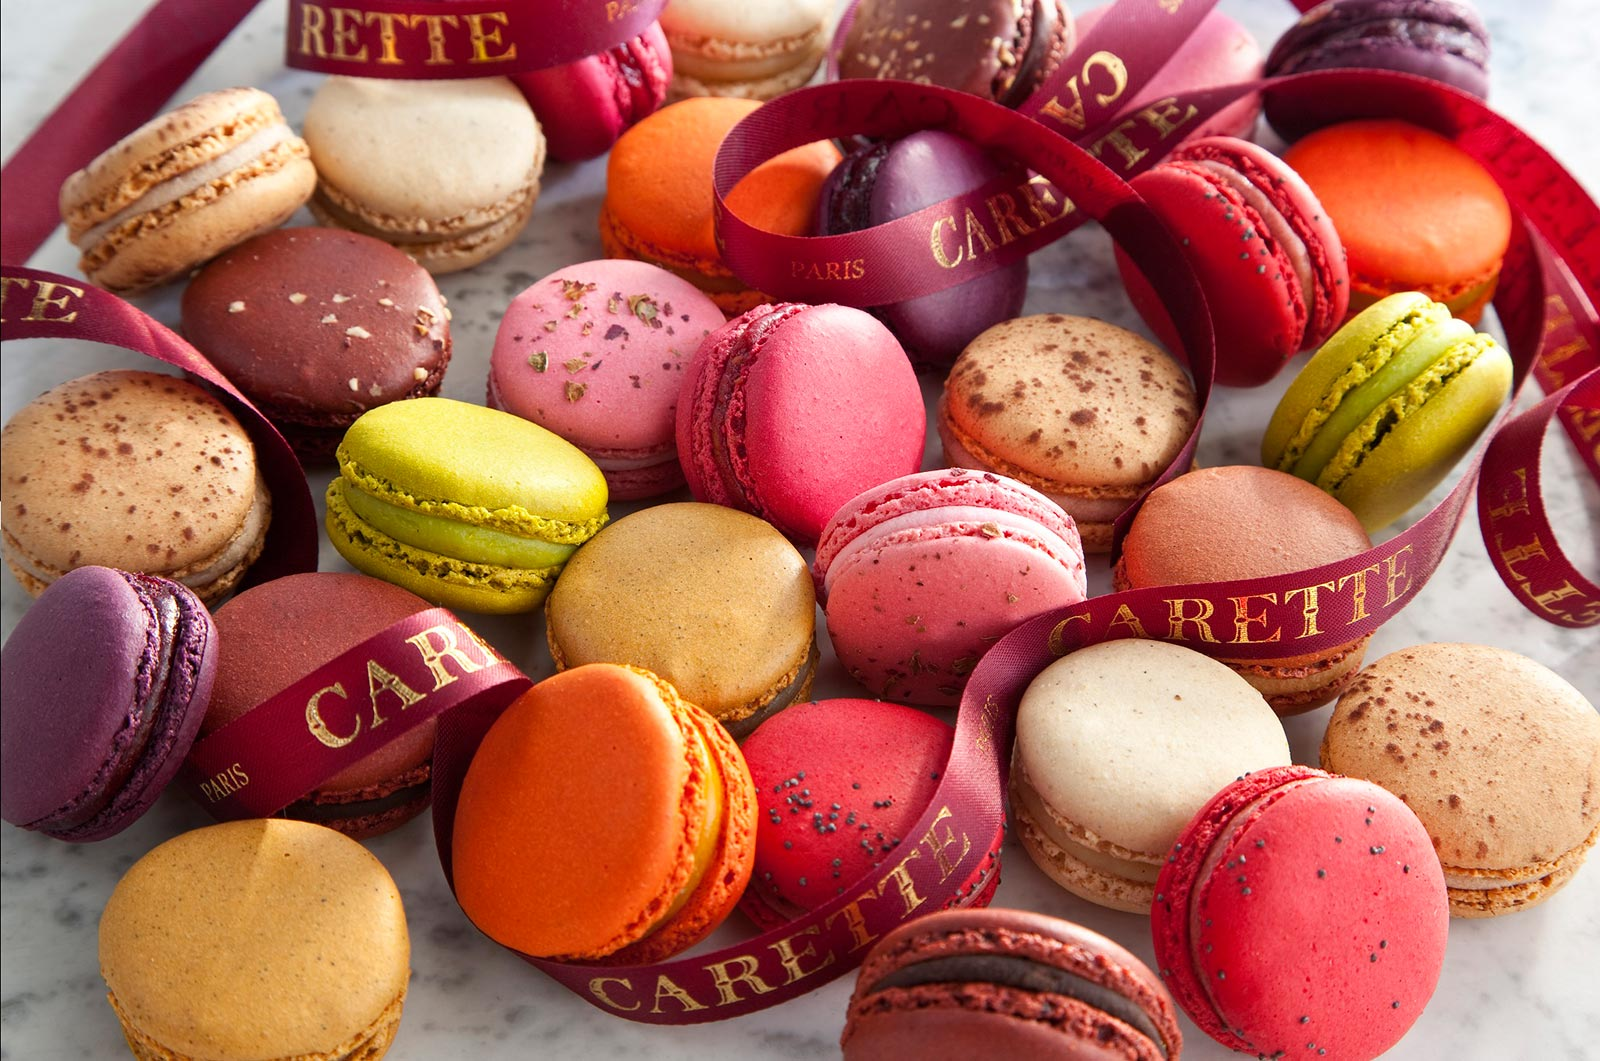 Image for Ever had the dainty French macarons?